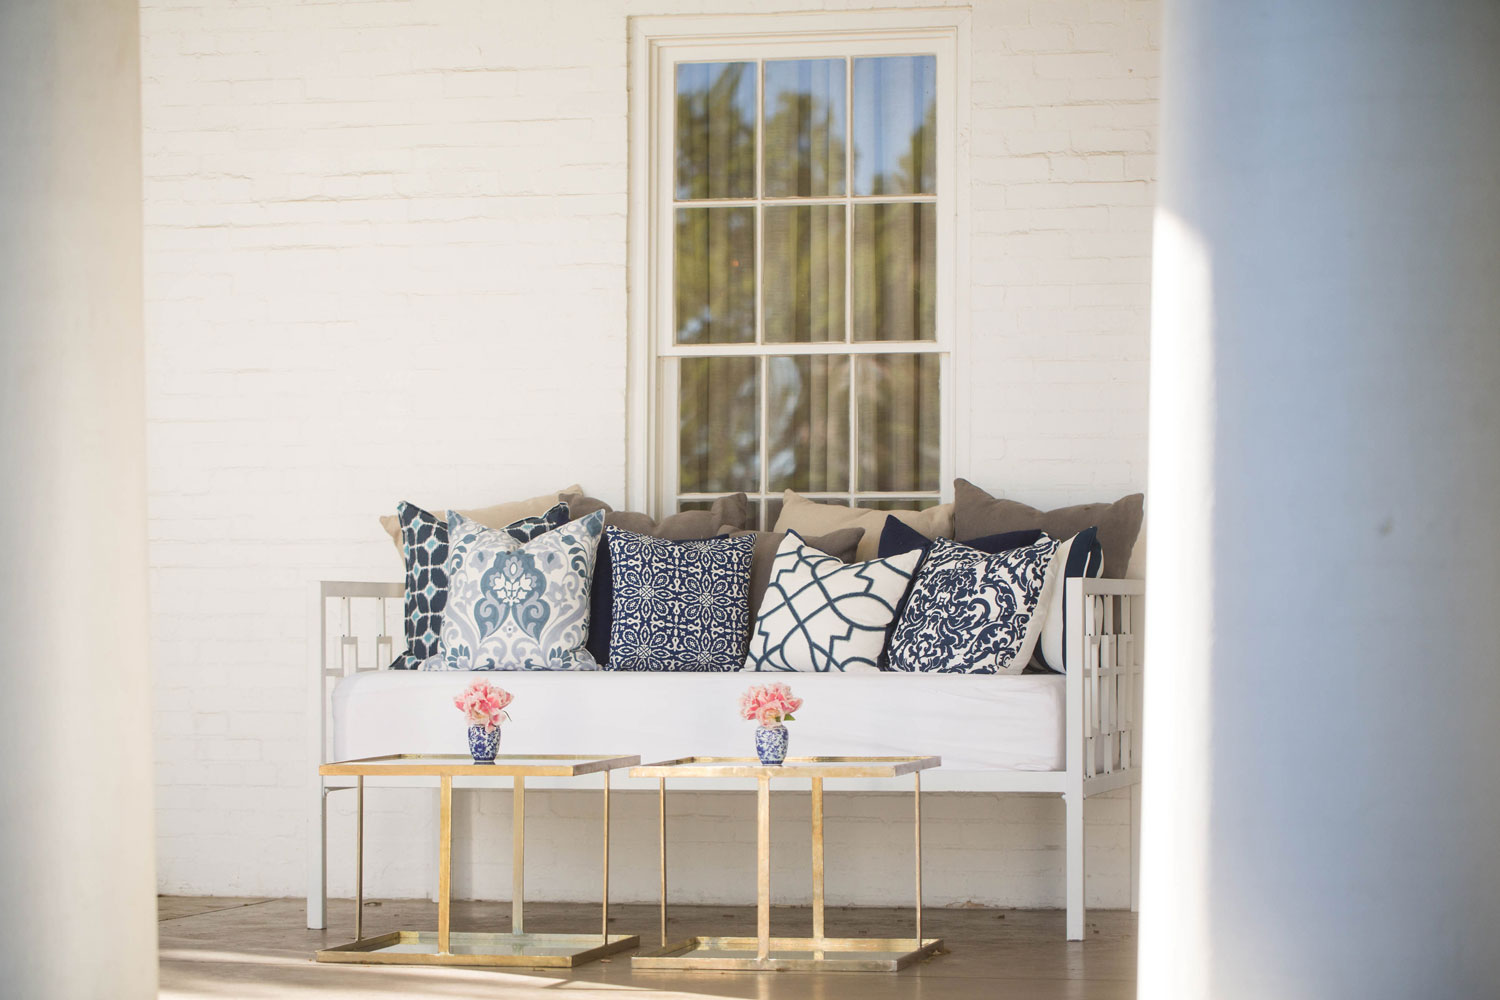 outdoor wedding lounge area on porch patio blue and white pillows emily clarke events